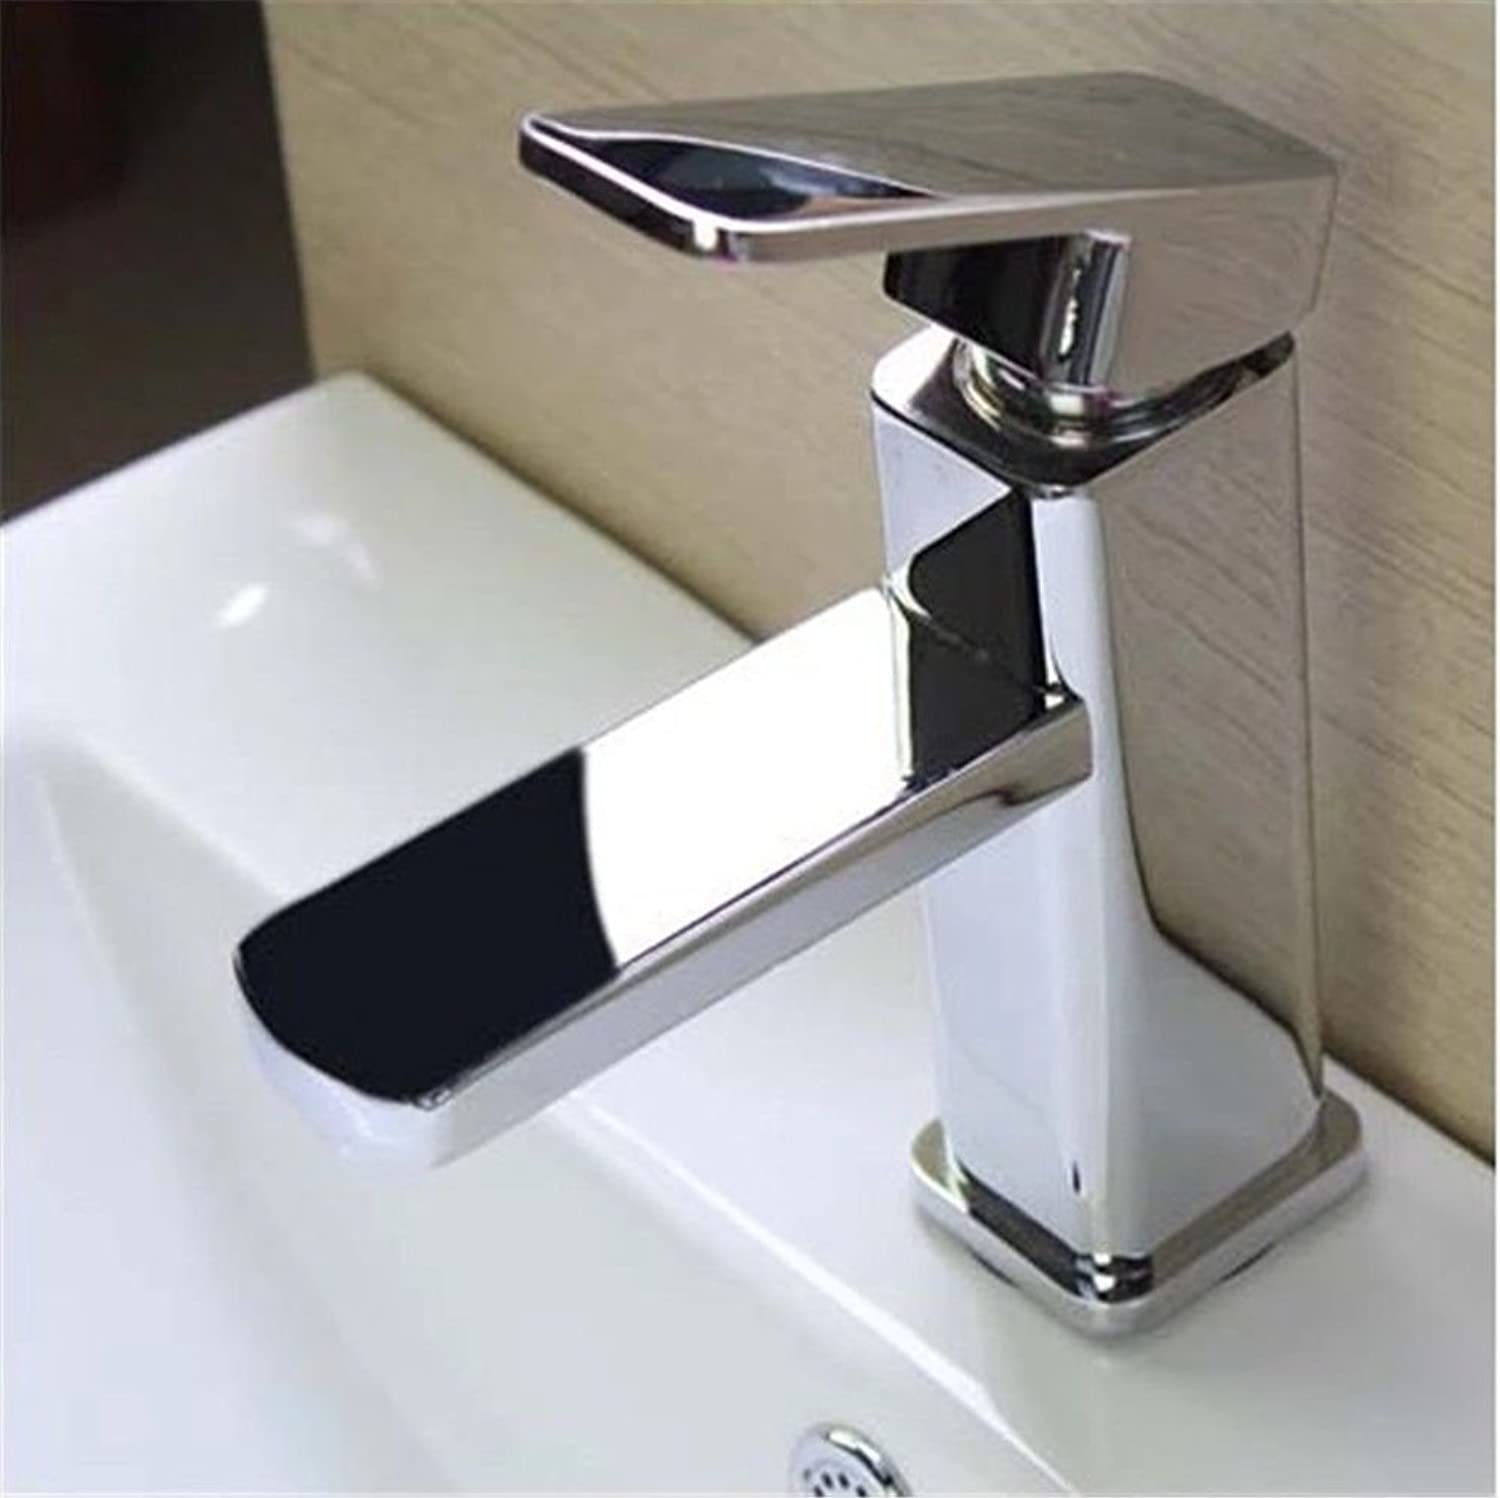 Gyps Faucet Single-Lever Washbasin Mixer Tap Bathroom Basin Mixer Tap Bathroom Sink Single Lever Control Single Hole and Cold Water Taps On,Mischba